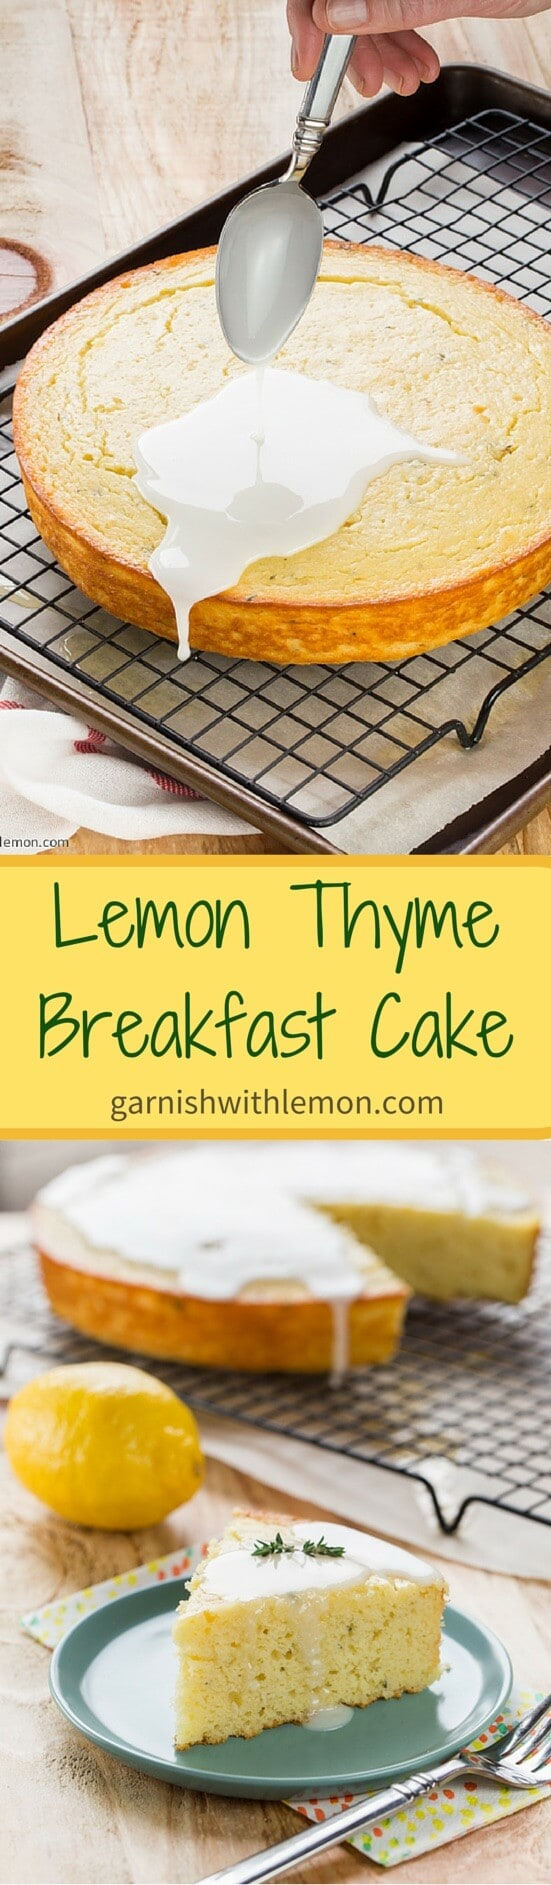 Yes, cake for breakfast is perfectly acceptable, especially when it's this bright and herbal Lemon Thyme Breakfast Cake!